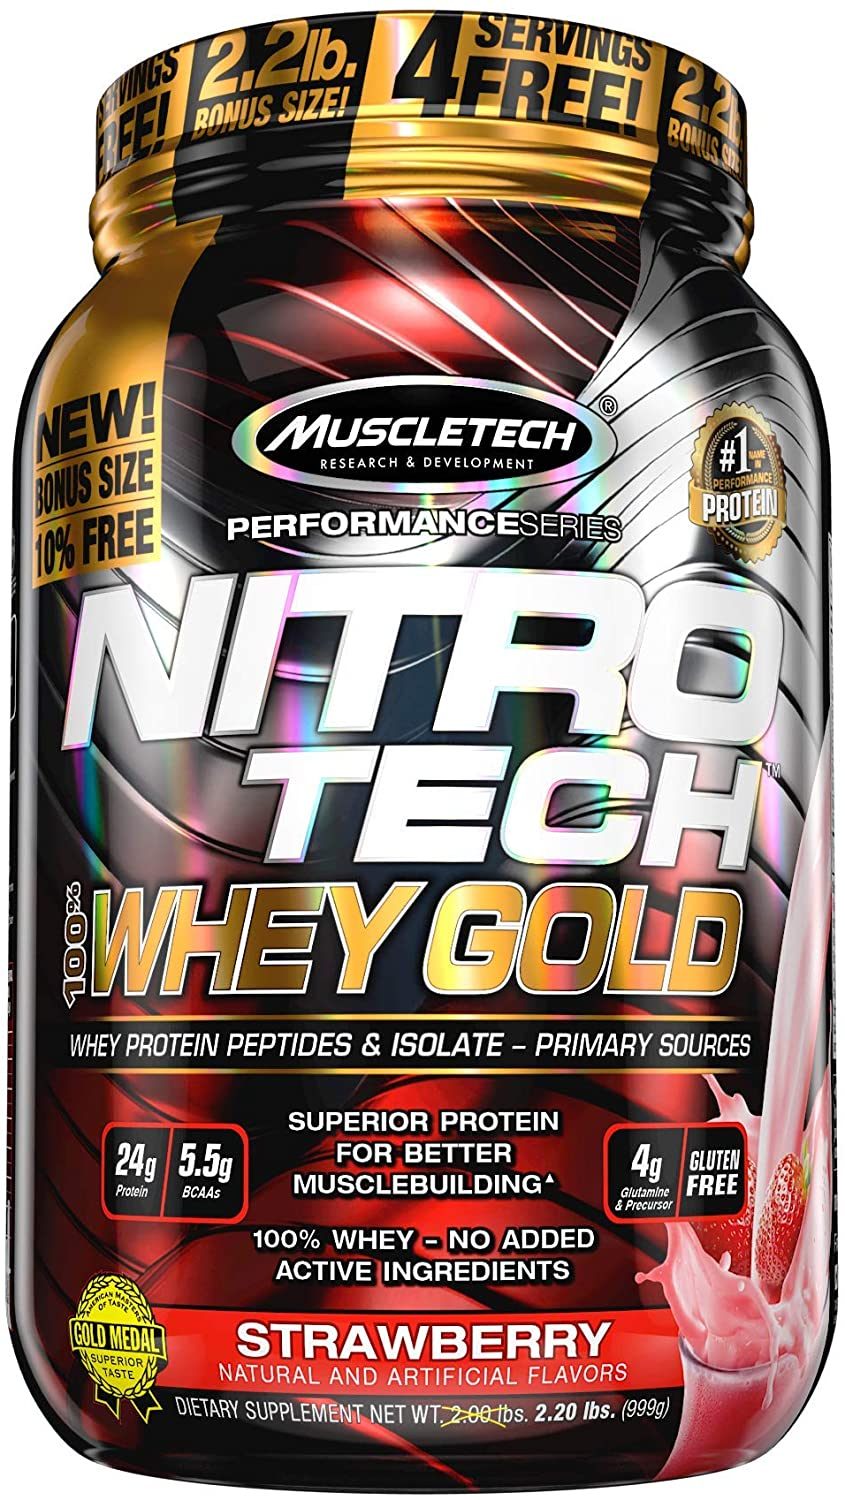 MuscleTech Nitro-Tech Whey Gold Protein Powder, Whey Isolate and Peptides, 24 Grams Protein, 5.5 Grams BCAAs, Easy to Mix, Tastes Great, Gluten-Free, Strawberry, 2.2 Pounds (31 Servings)